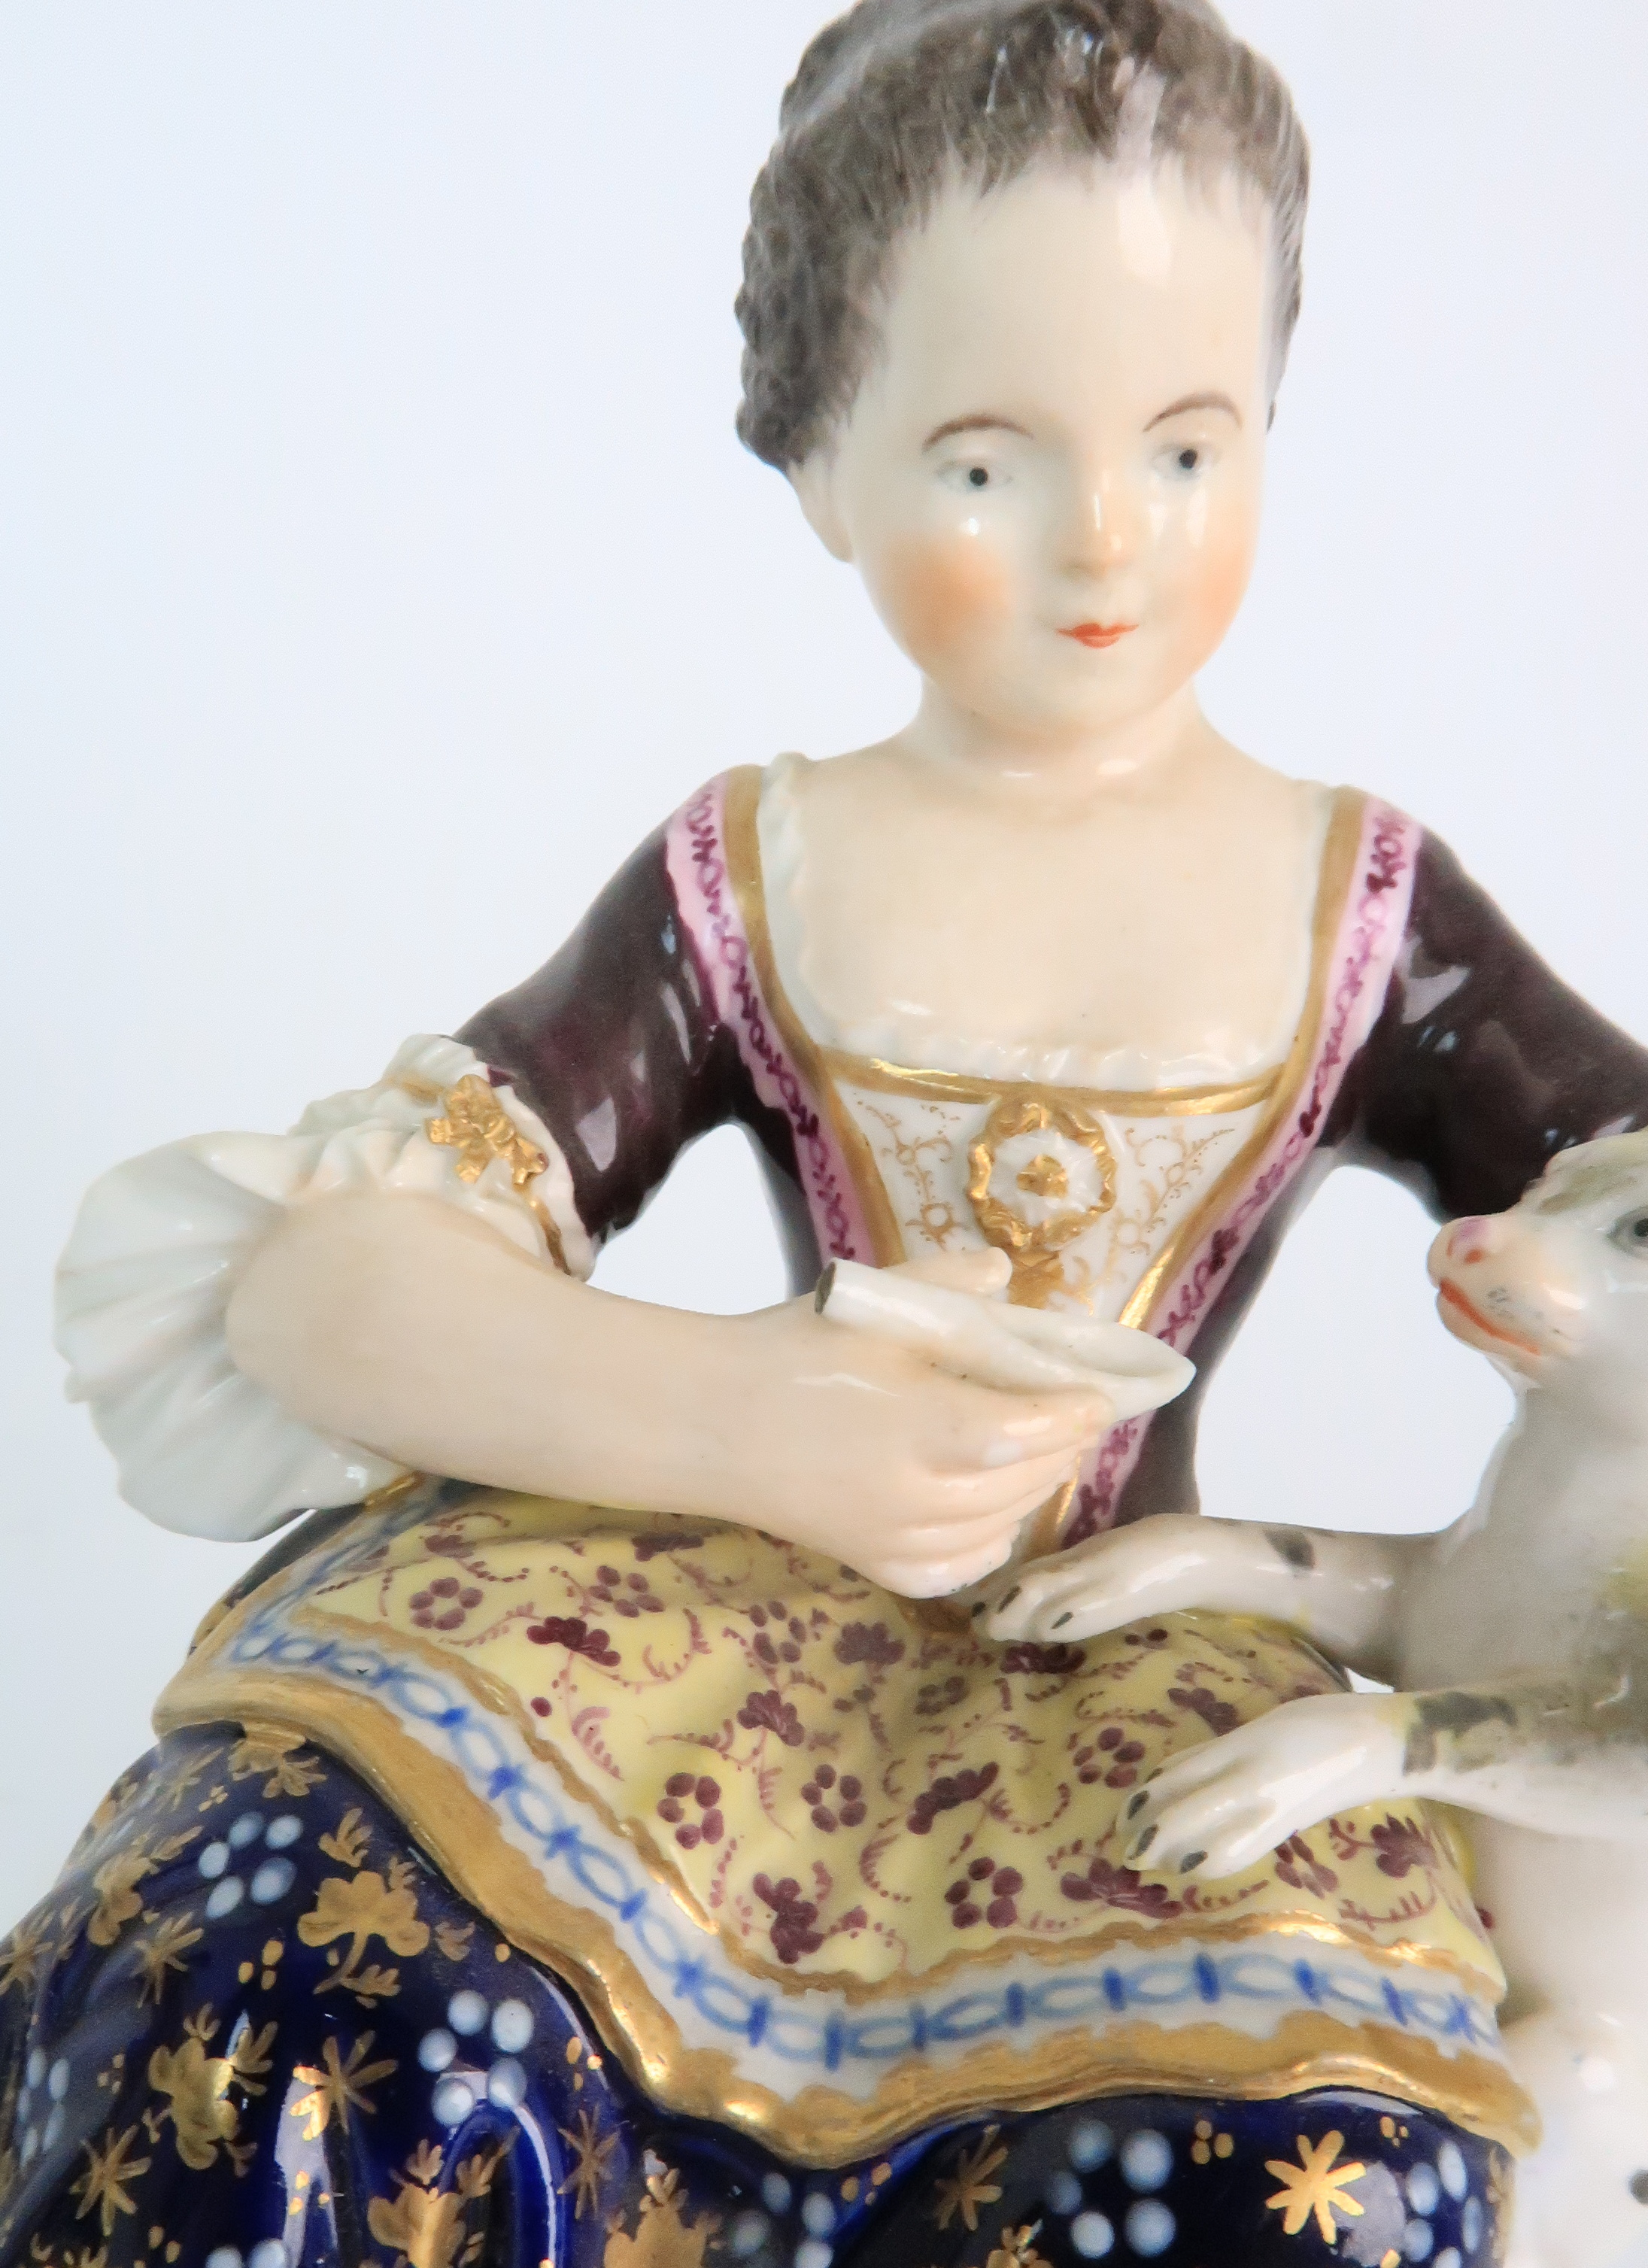 A PAIR OF DERBY PORCELAIN FIGURES early 19th century, modelled as a seated boy playing with a dog - Image 7 of 12